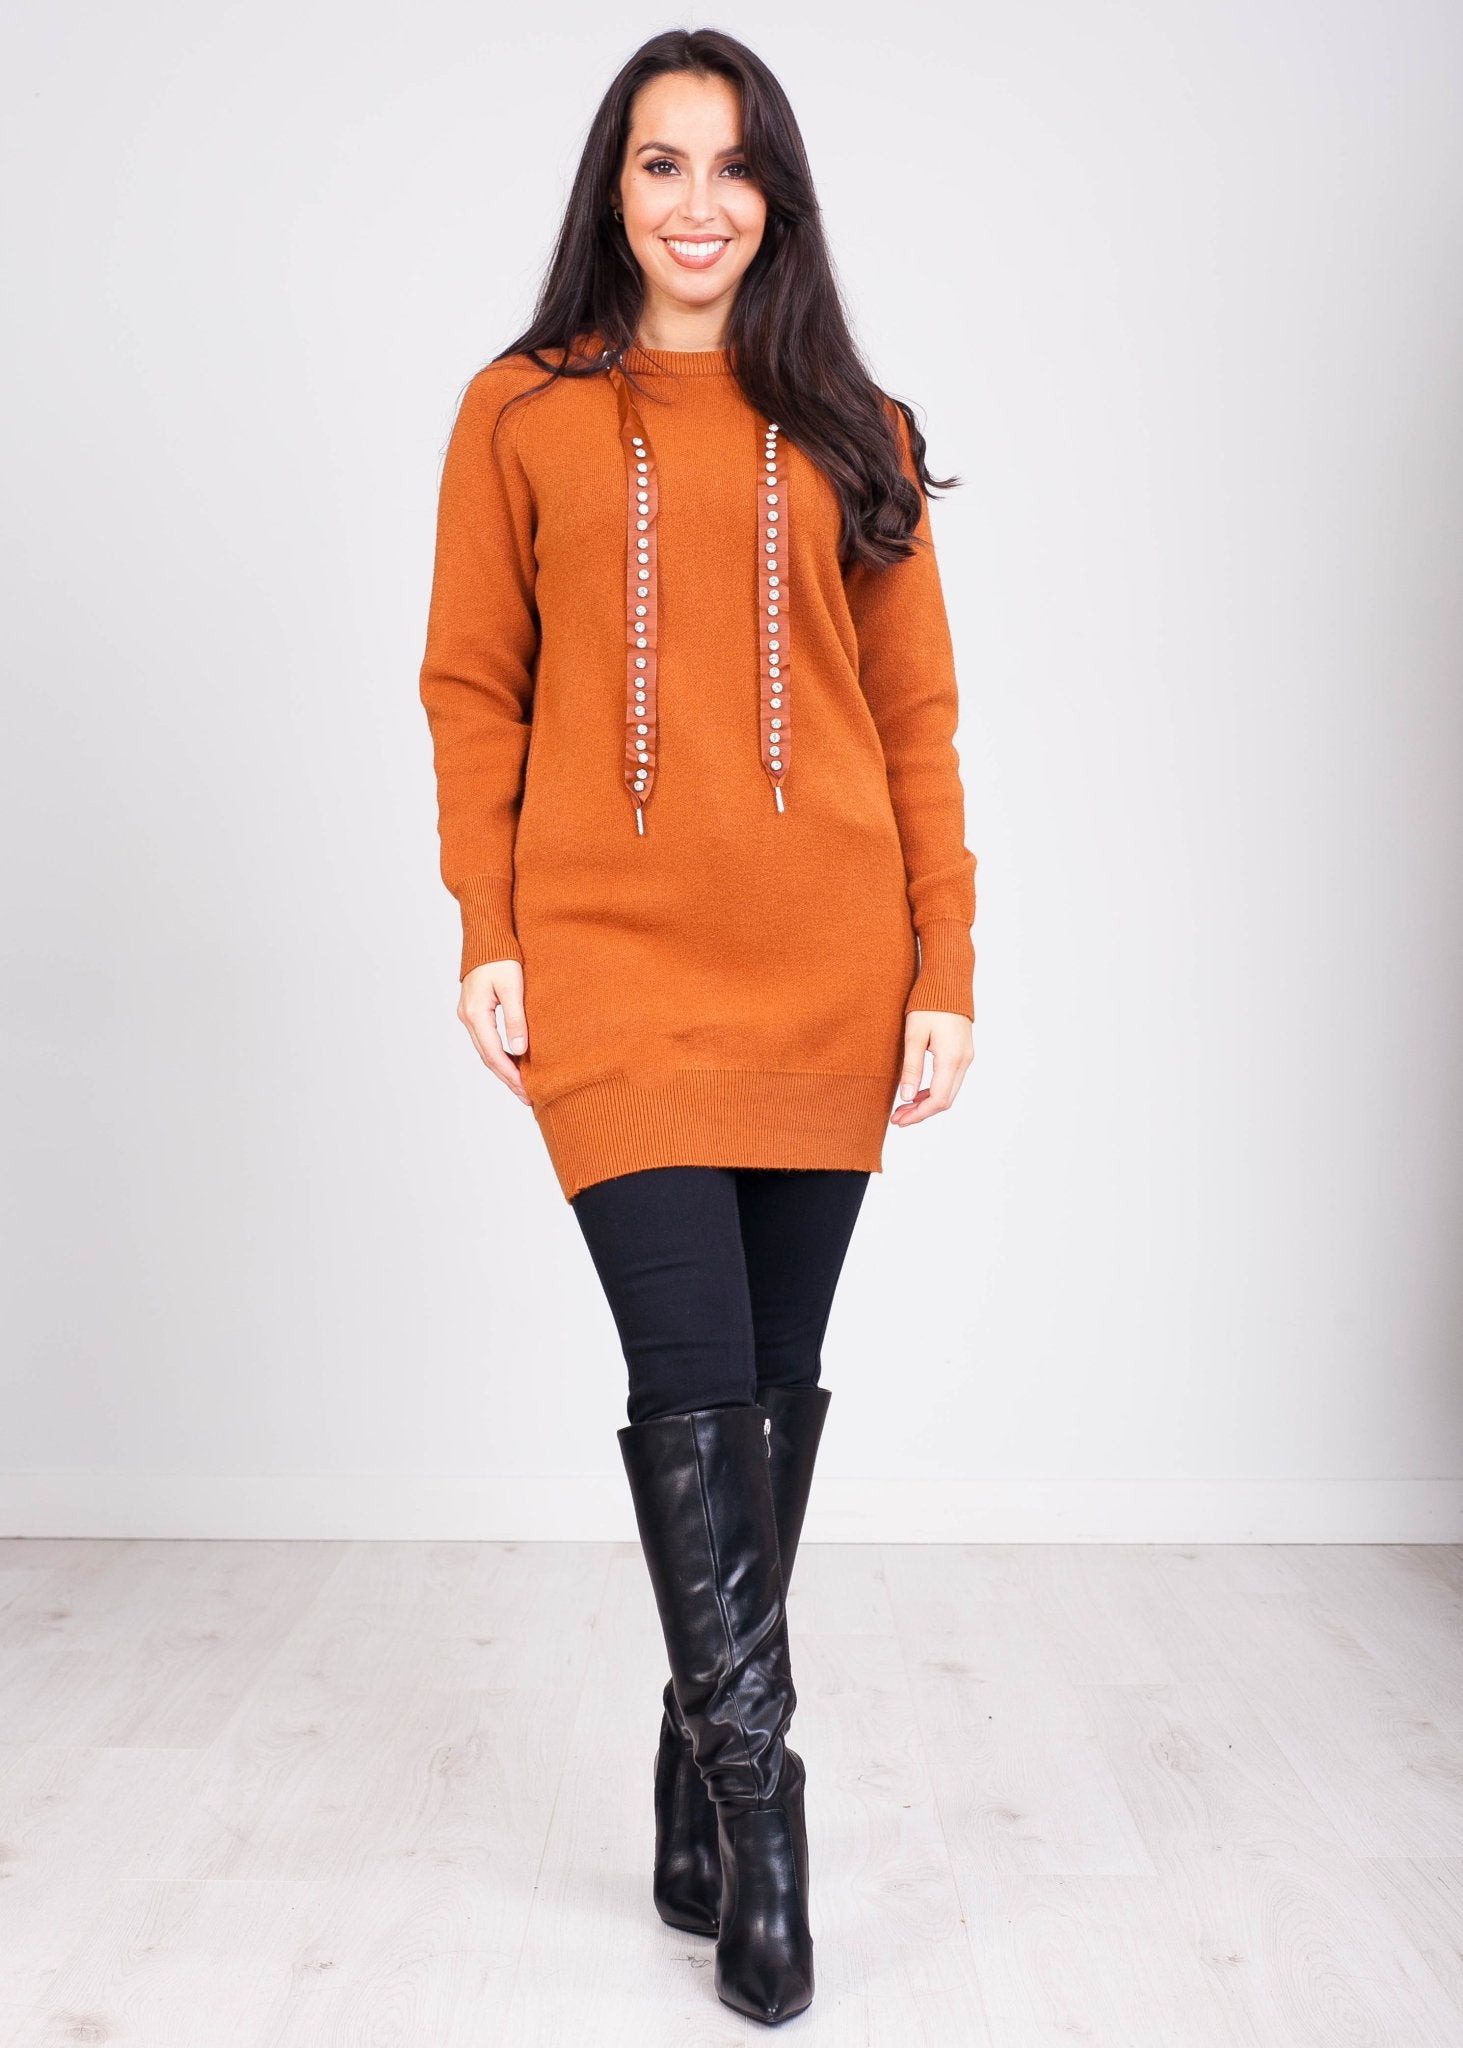 Priya Brown Hoodie Dress with Jewels - The Walk in Wardrobe